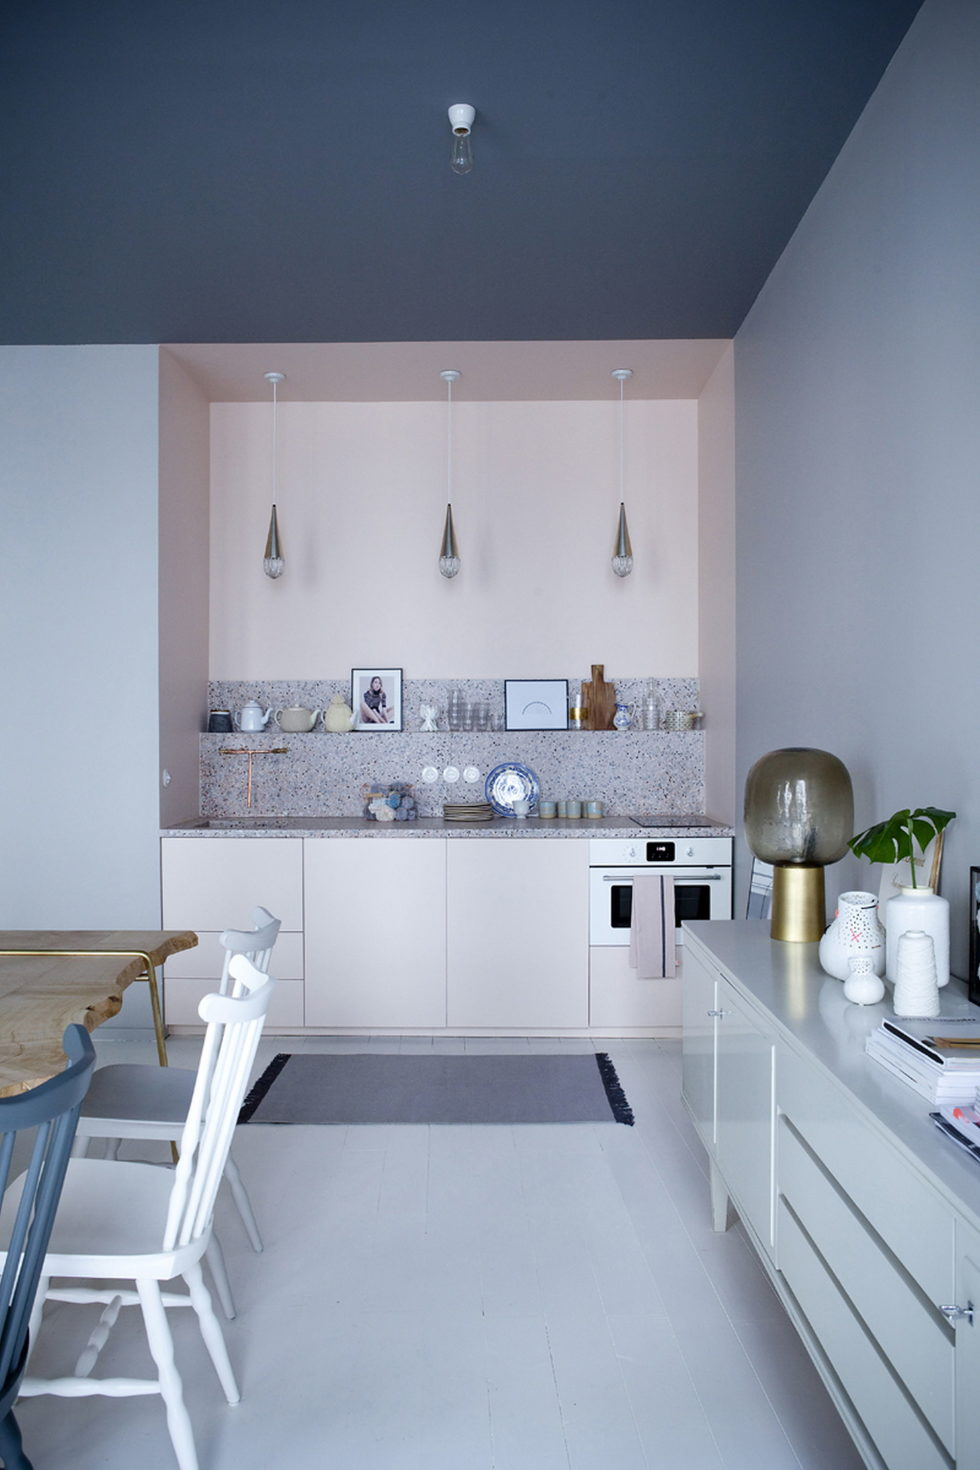 chez-marie-sixtine-the-apartment-for-guests-in-marie-sixtine-store-31